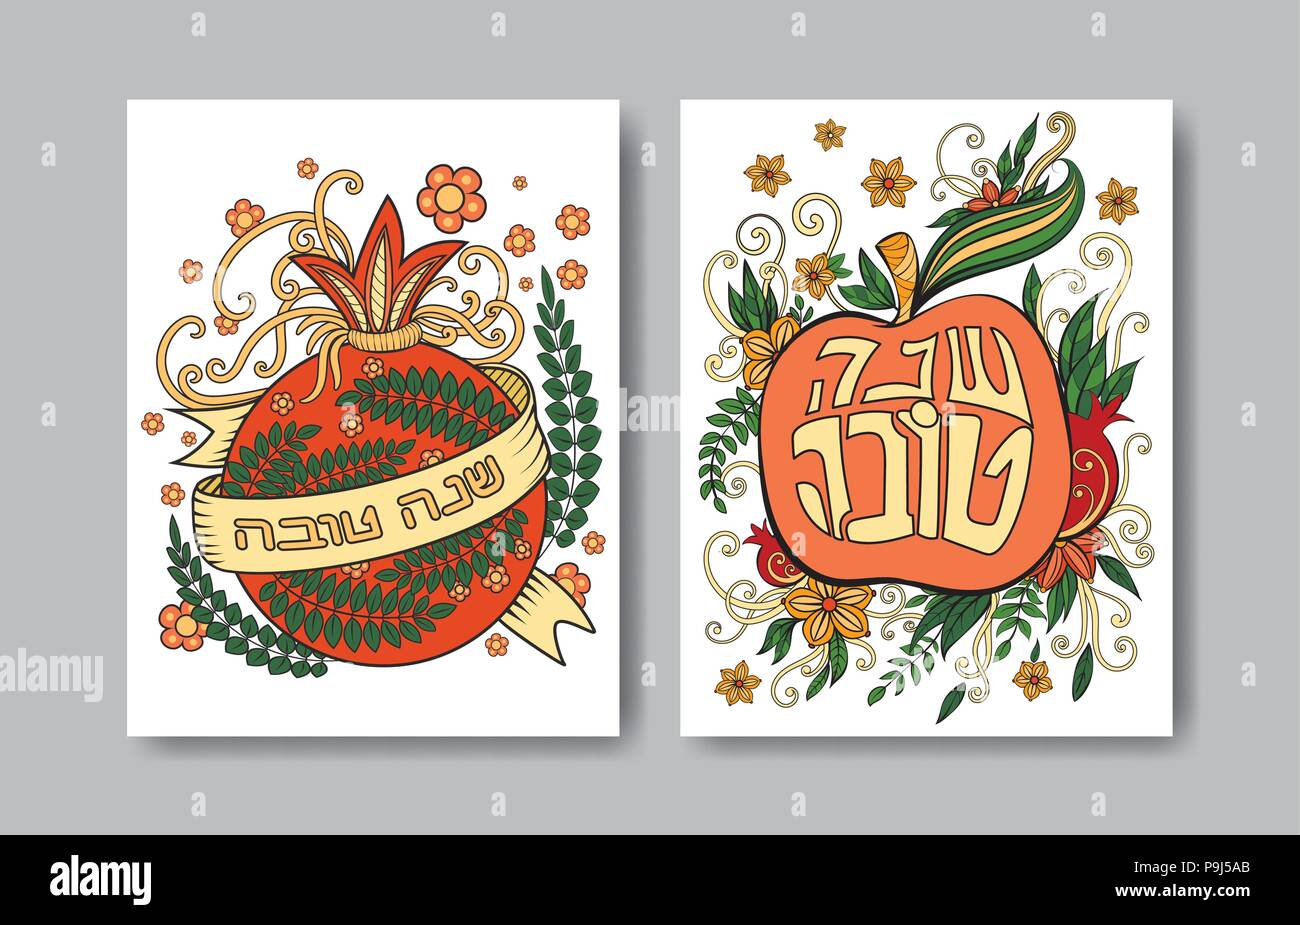 Rosh Hashanah Jewish New Year Greeting Cards Design With Apple And